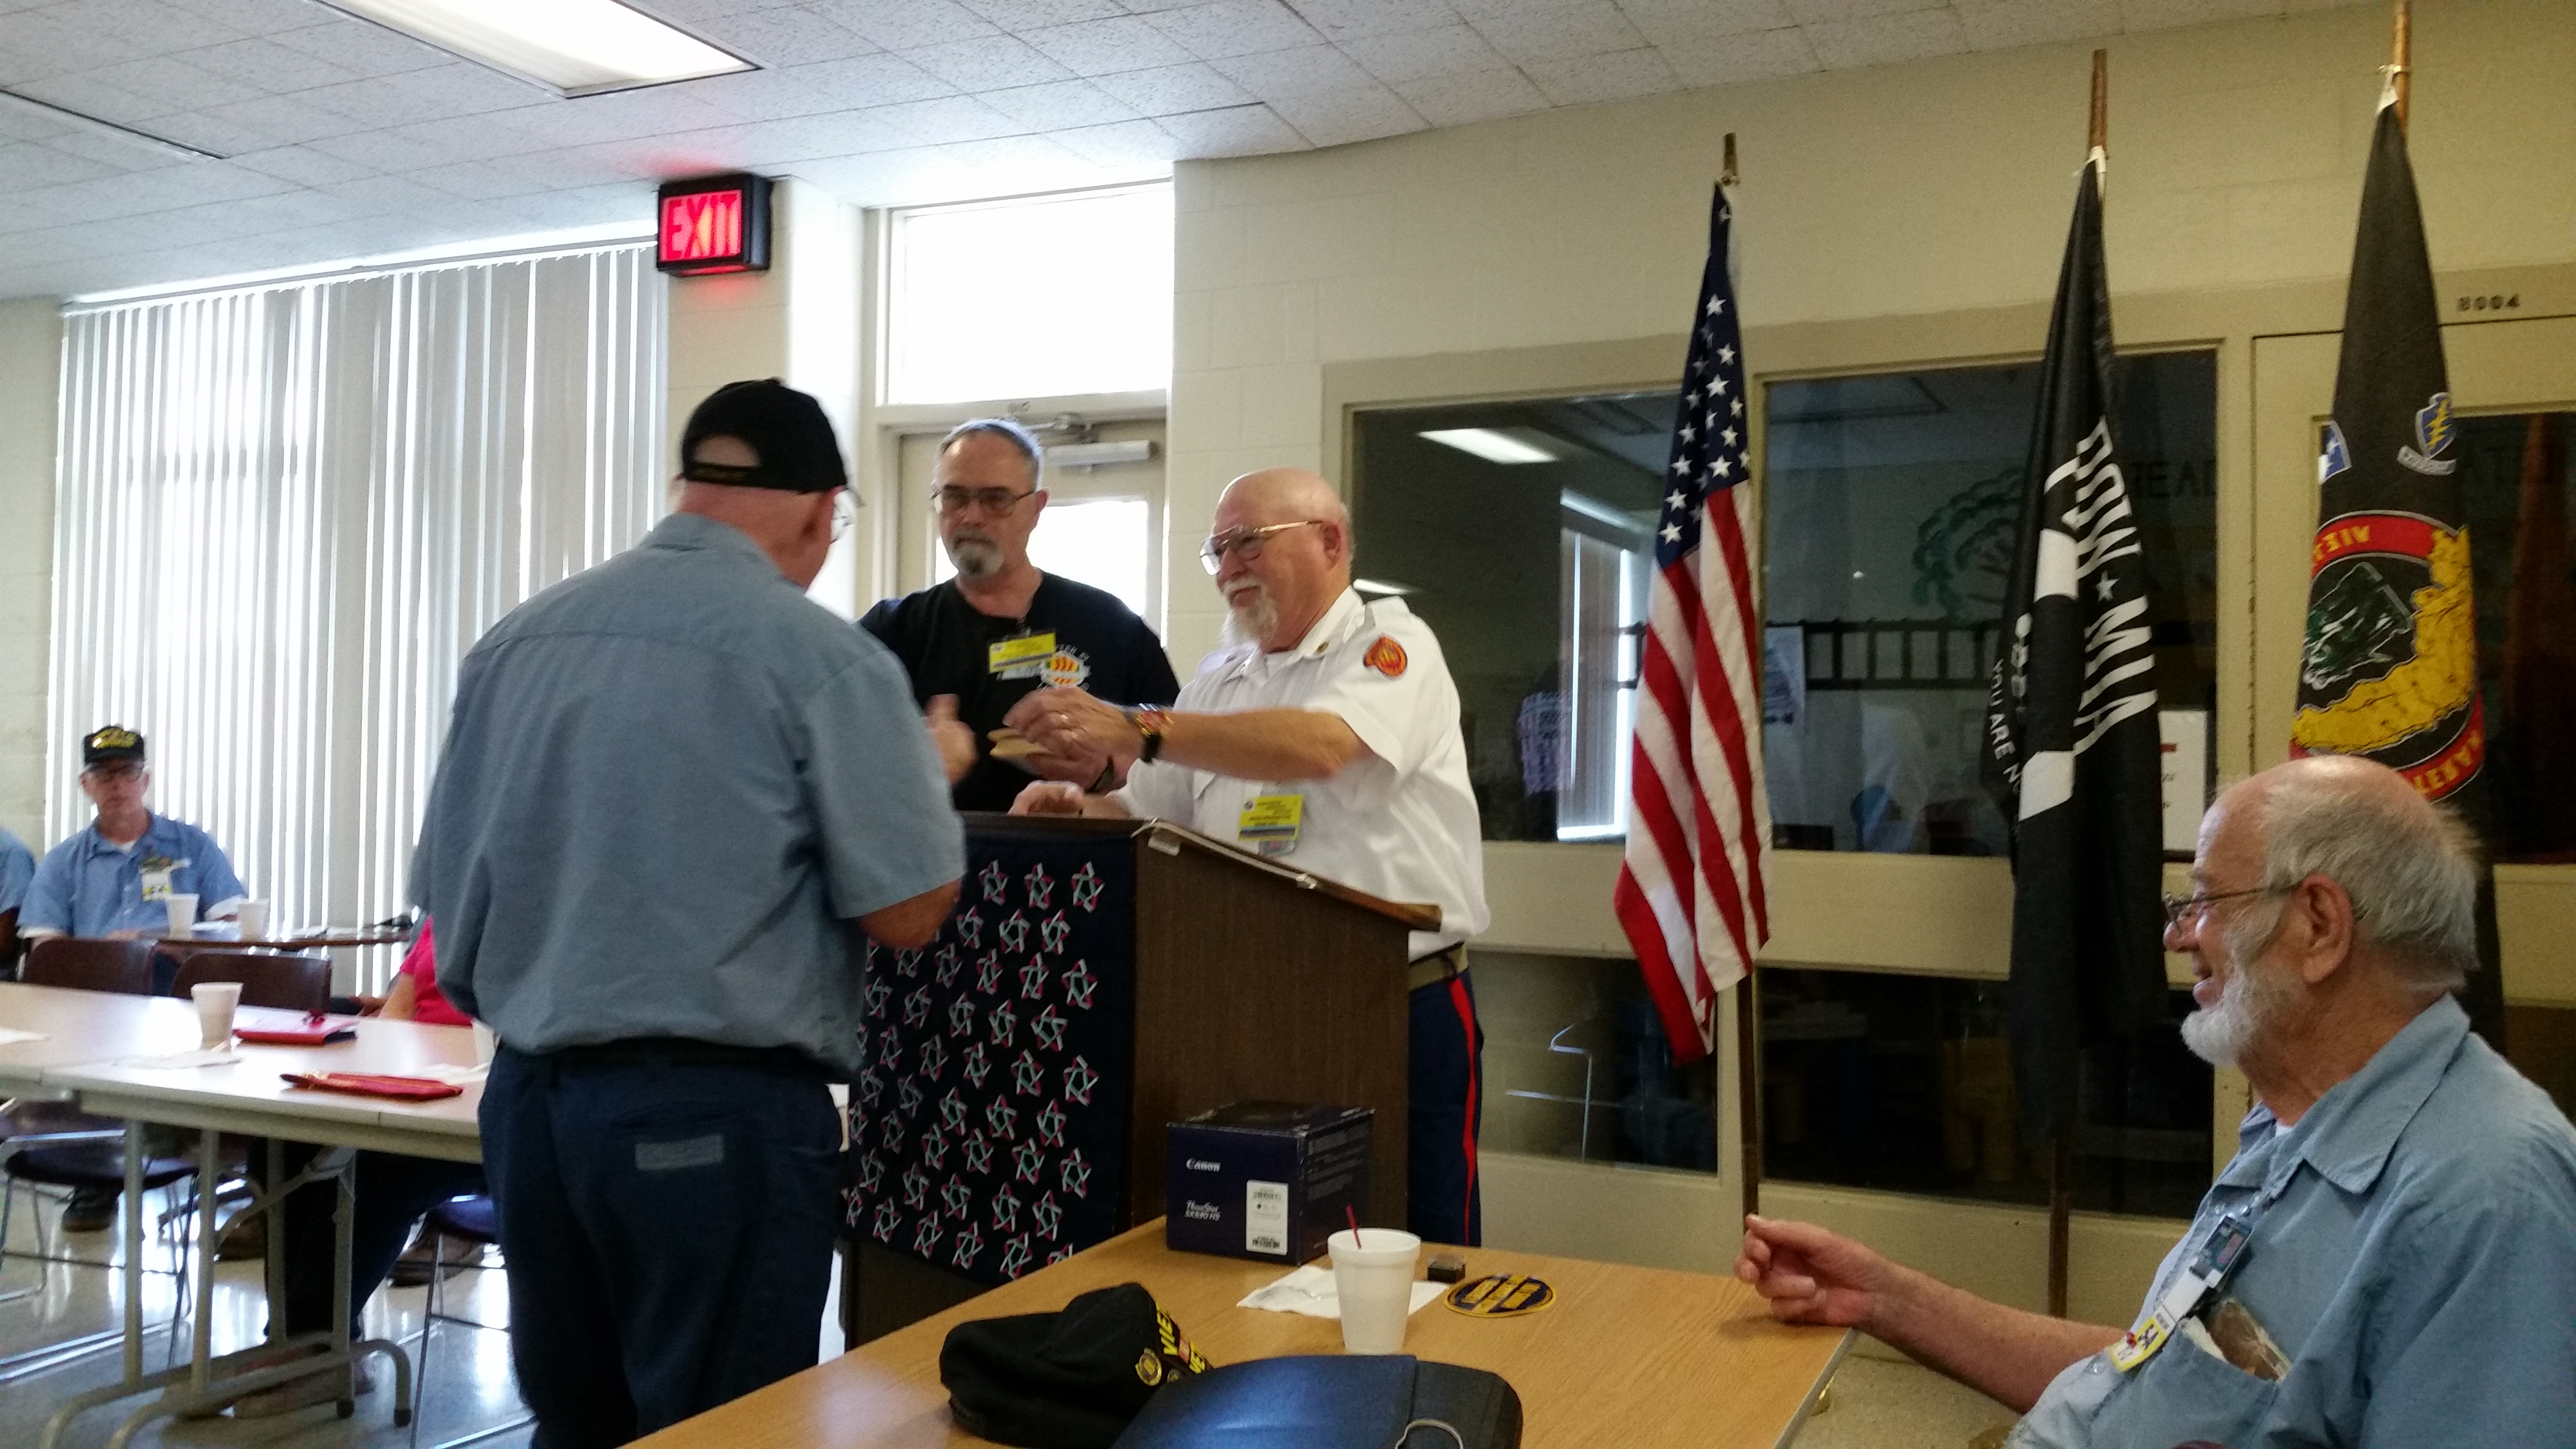 Vietnam Veterans Receive Lapel Pin